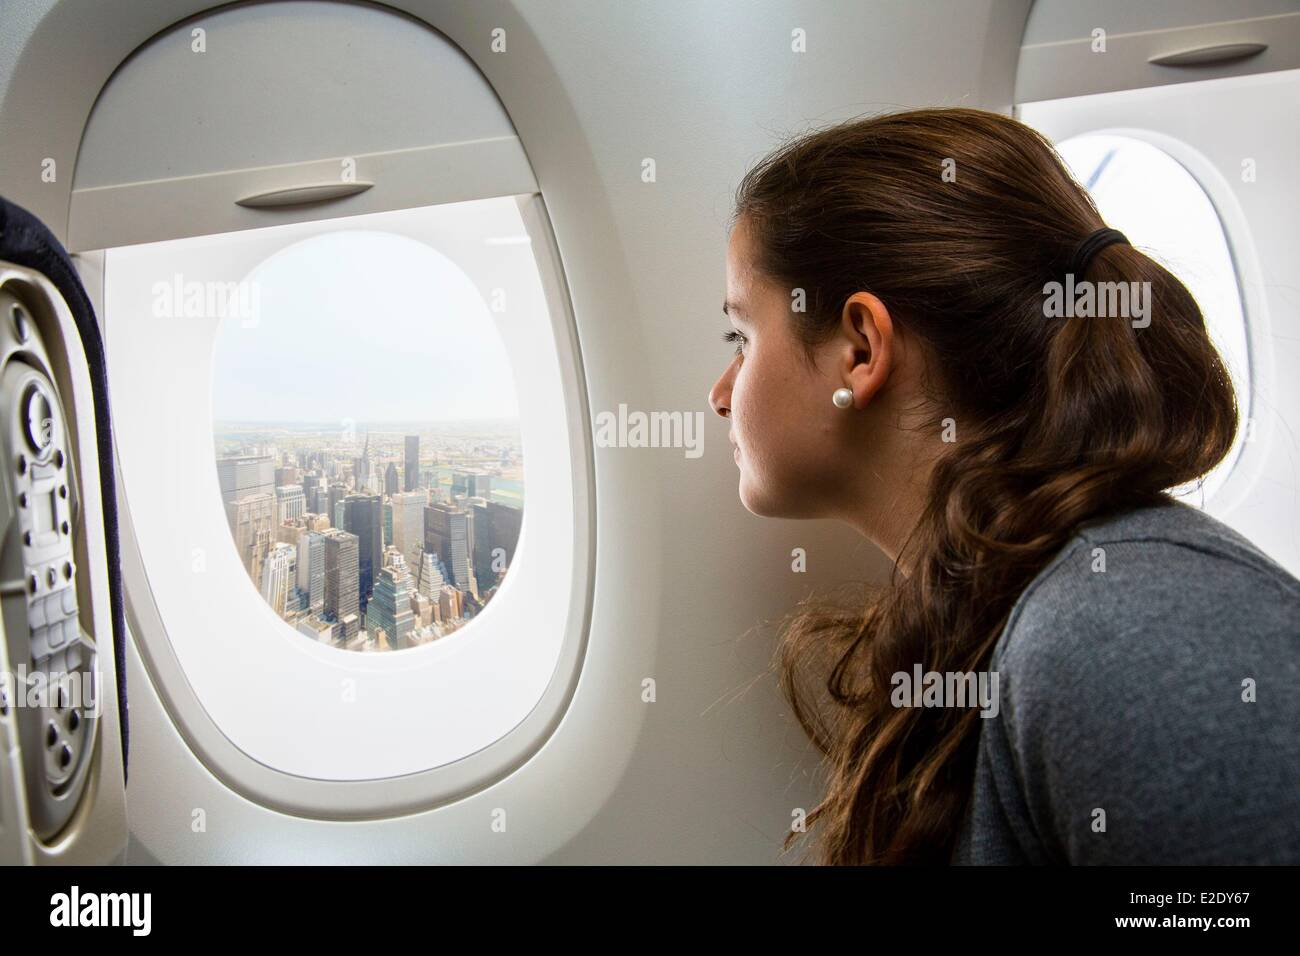 United States long-haul flight between Paris and New York child looking out the window - Stock Image